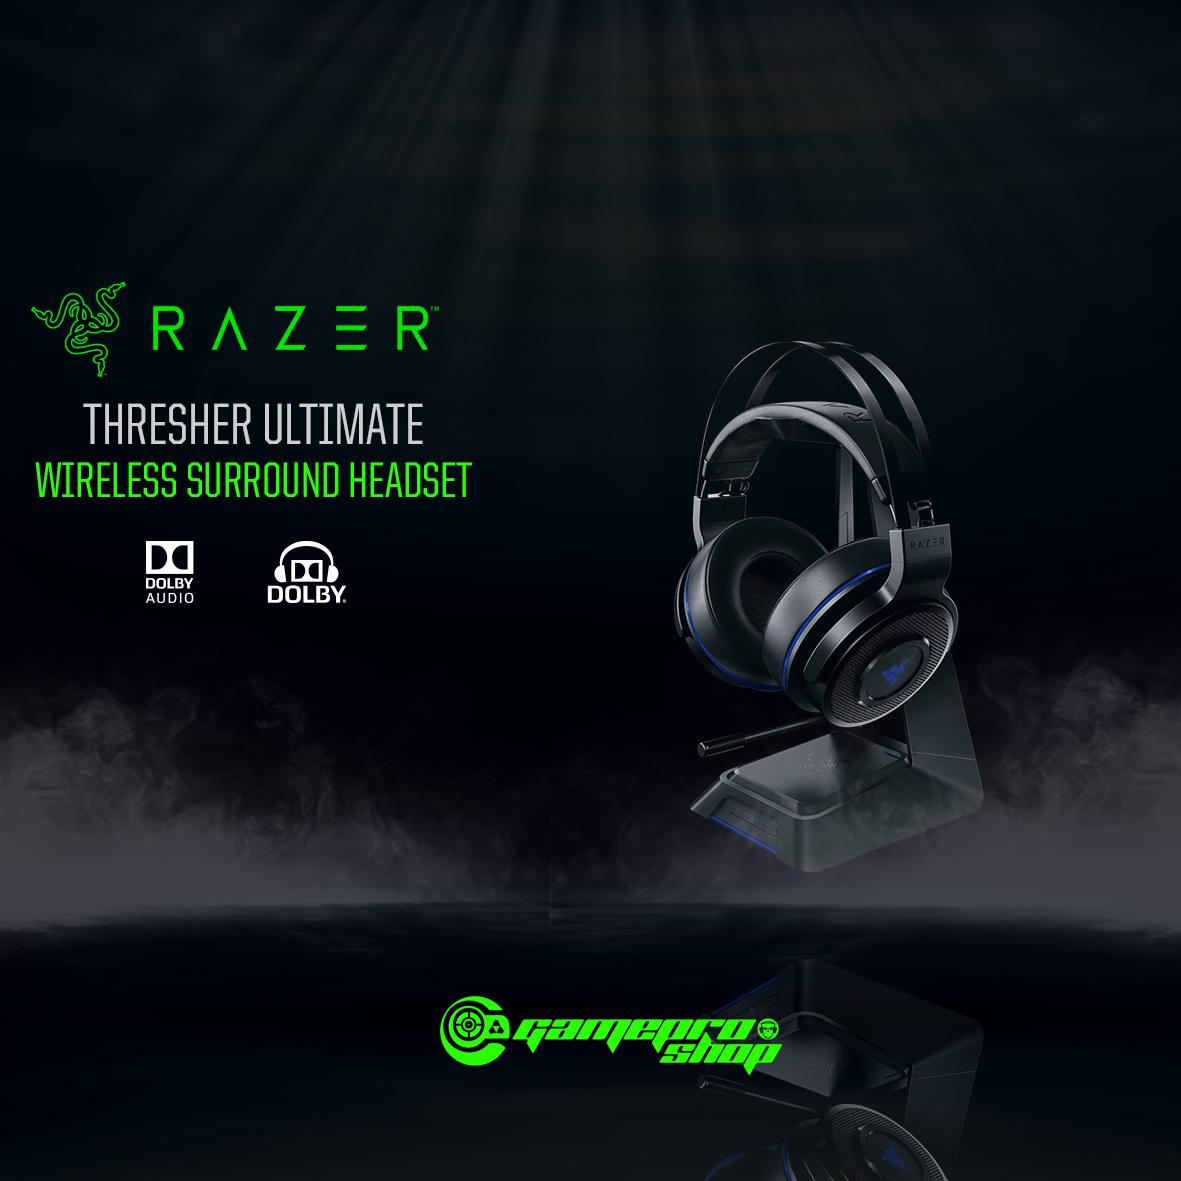 Razer Thresher Ultimate - Playstation 4 (PS4) Wireless Gaming Headset *NDP PROMO*